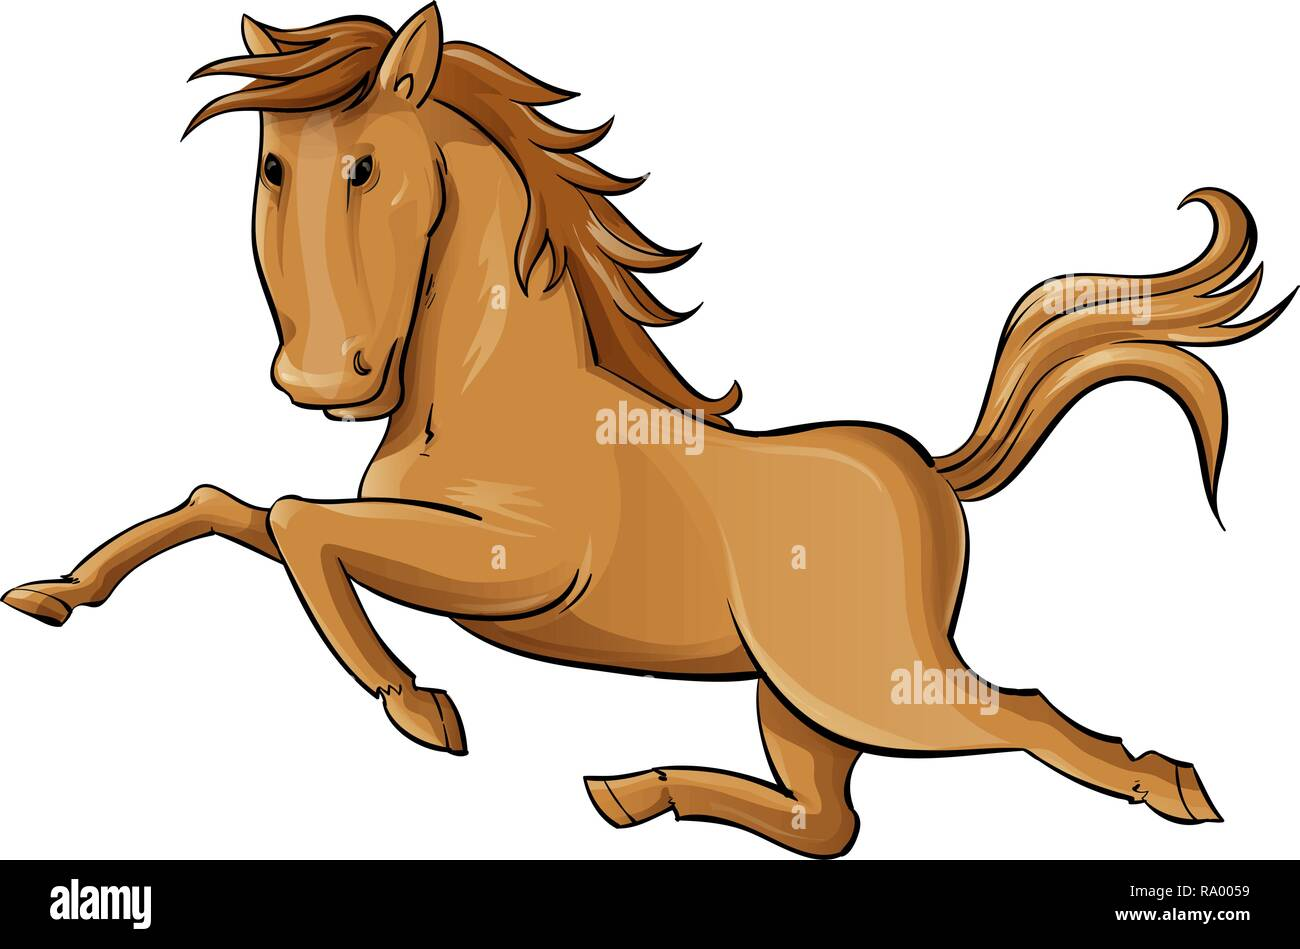 Galloping Cartoon Horse . vector illustration isolated on white background - Stock Image